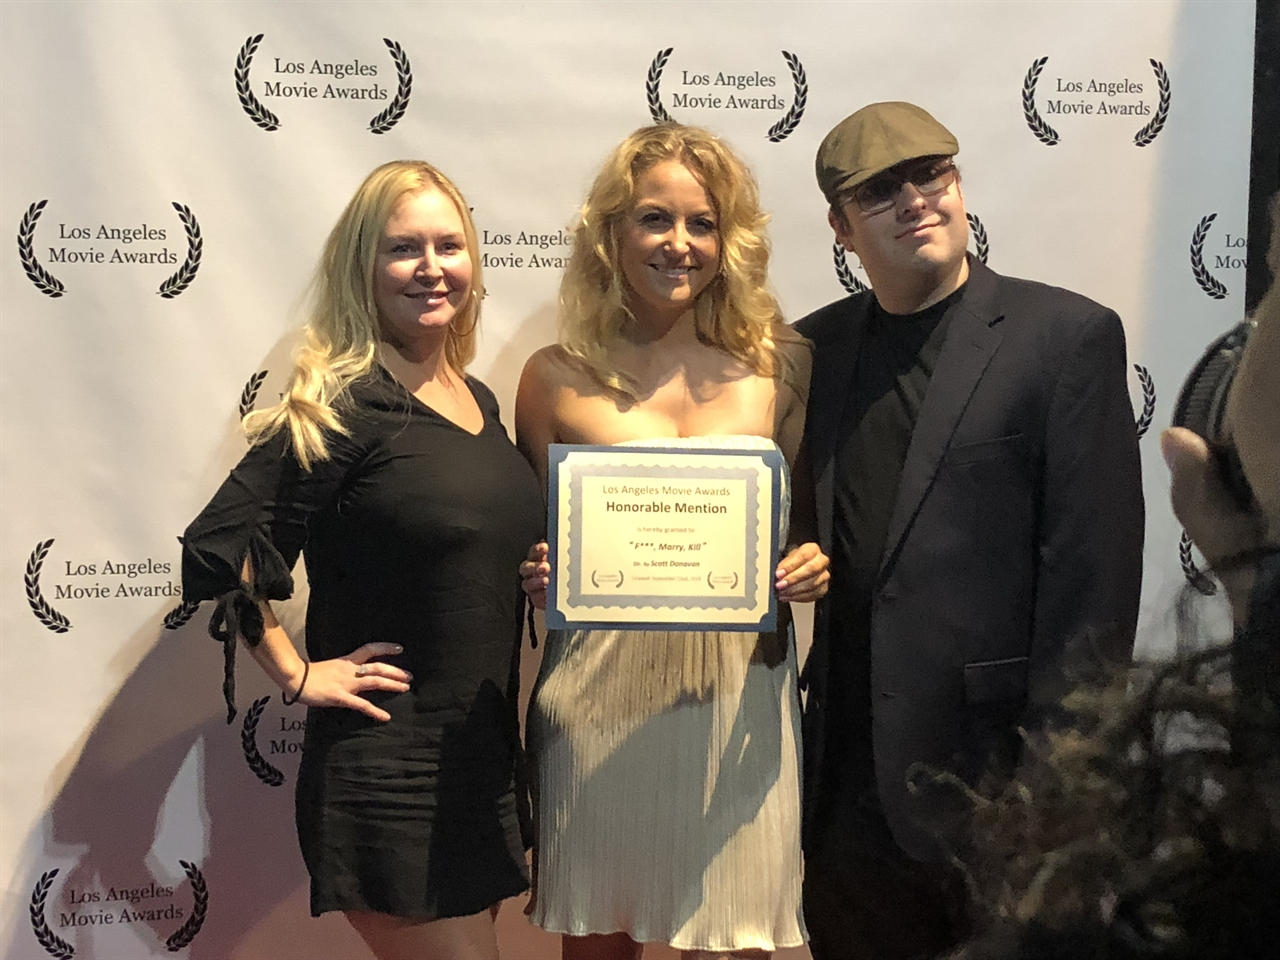 Janine with fellow producer/ actress Rachel Ryling and actor Christopher Tenney for F***, Marry Kill at LA Movie Awards in Sept' 2018